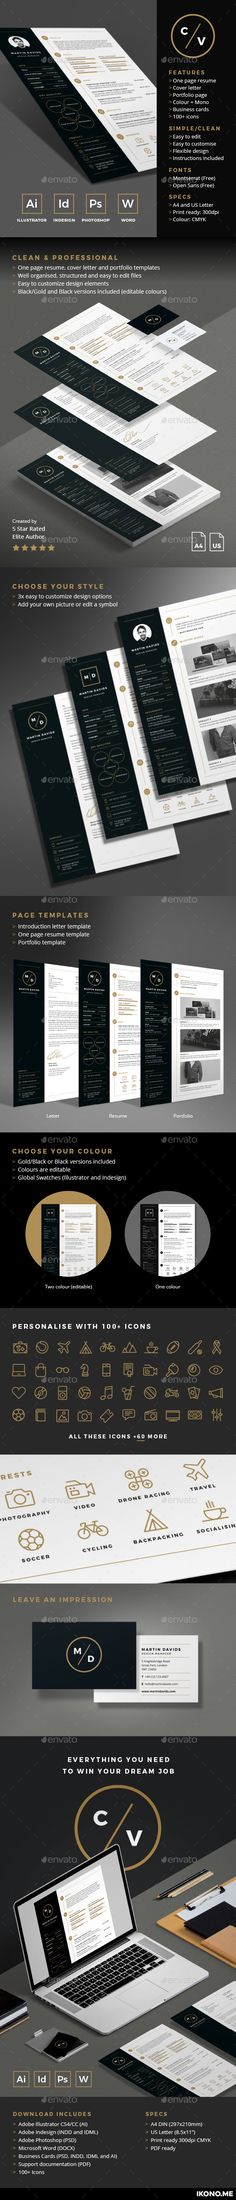 3 Page Business Resume With 3 Color Combinations | Business Resume